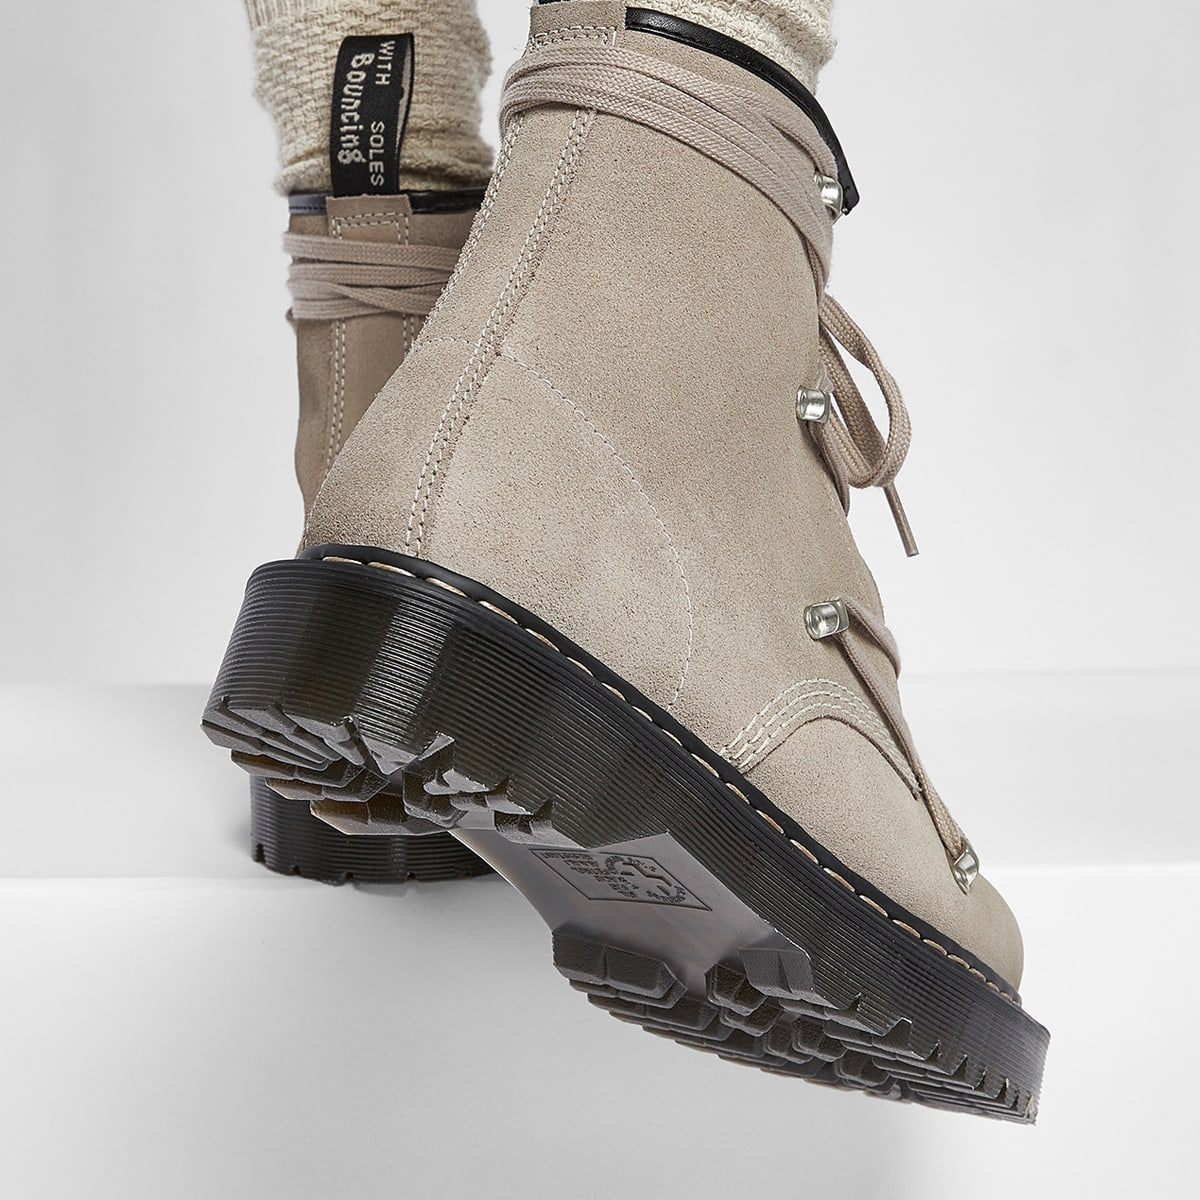 Rick Owens x Dr. Martens Suede Lace Up Boot - DM21-S6807-3696-SN